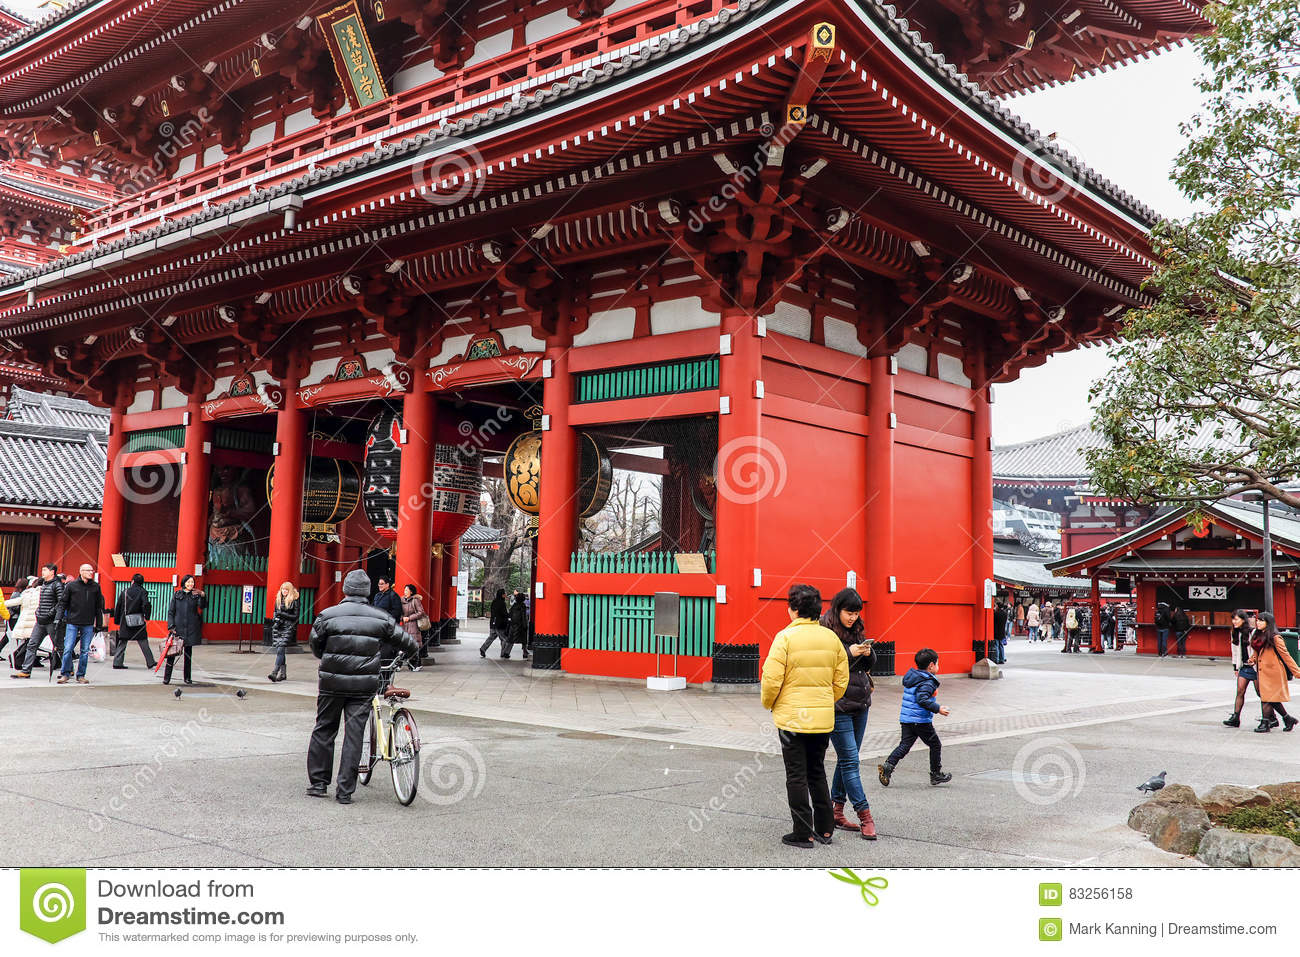 Statue of Hachiko Tokyo, Winter Visitation To The Senso-Ji Temple And Shrine In Tokyo ...